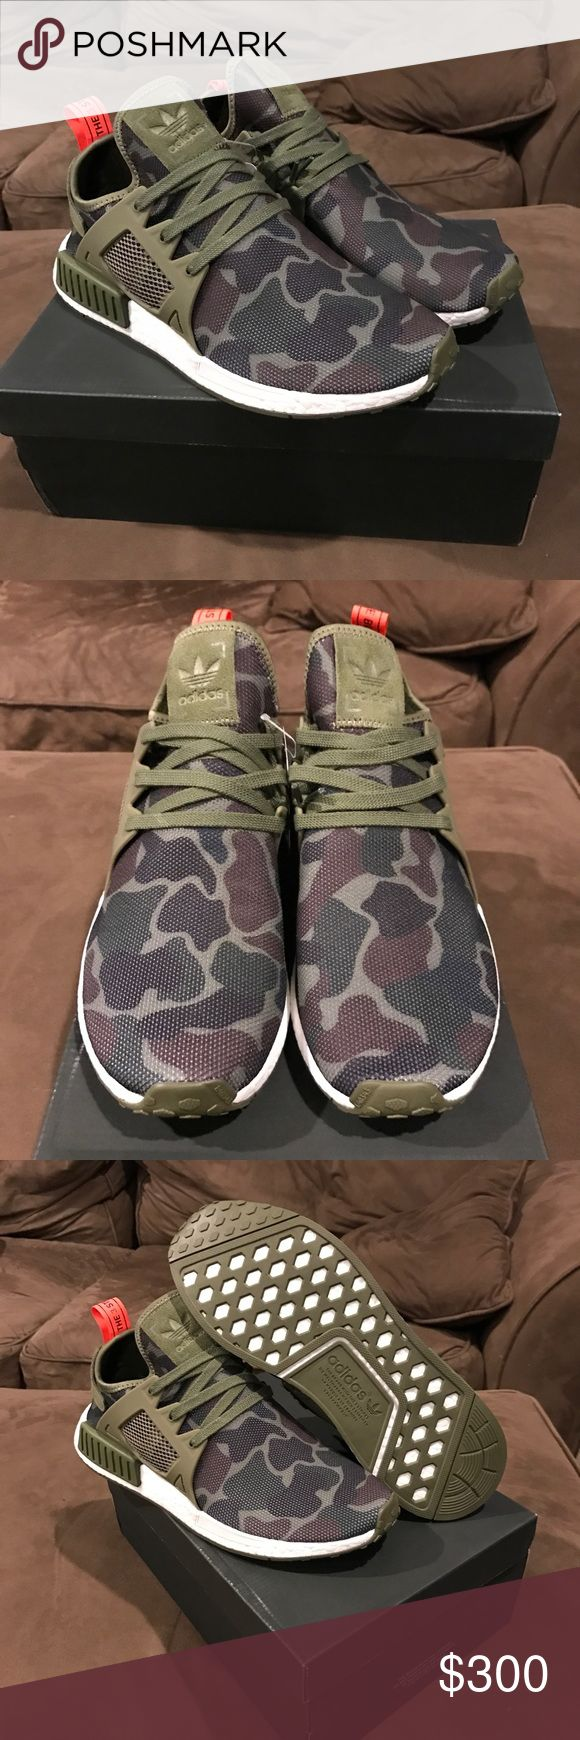 Adidas Camo NMD_XR 1 *Exclusive* Adidas Camo NMD_XR 1 *Exclusive* BRAND NEW IN BOX. This is an exclusive release from Adidas SOLD OUT everywhere and Deadstock. Make an offer!!! Adidas Shoes Sneakers